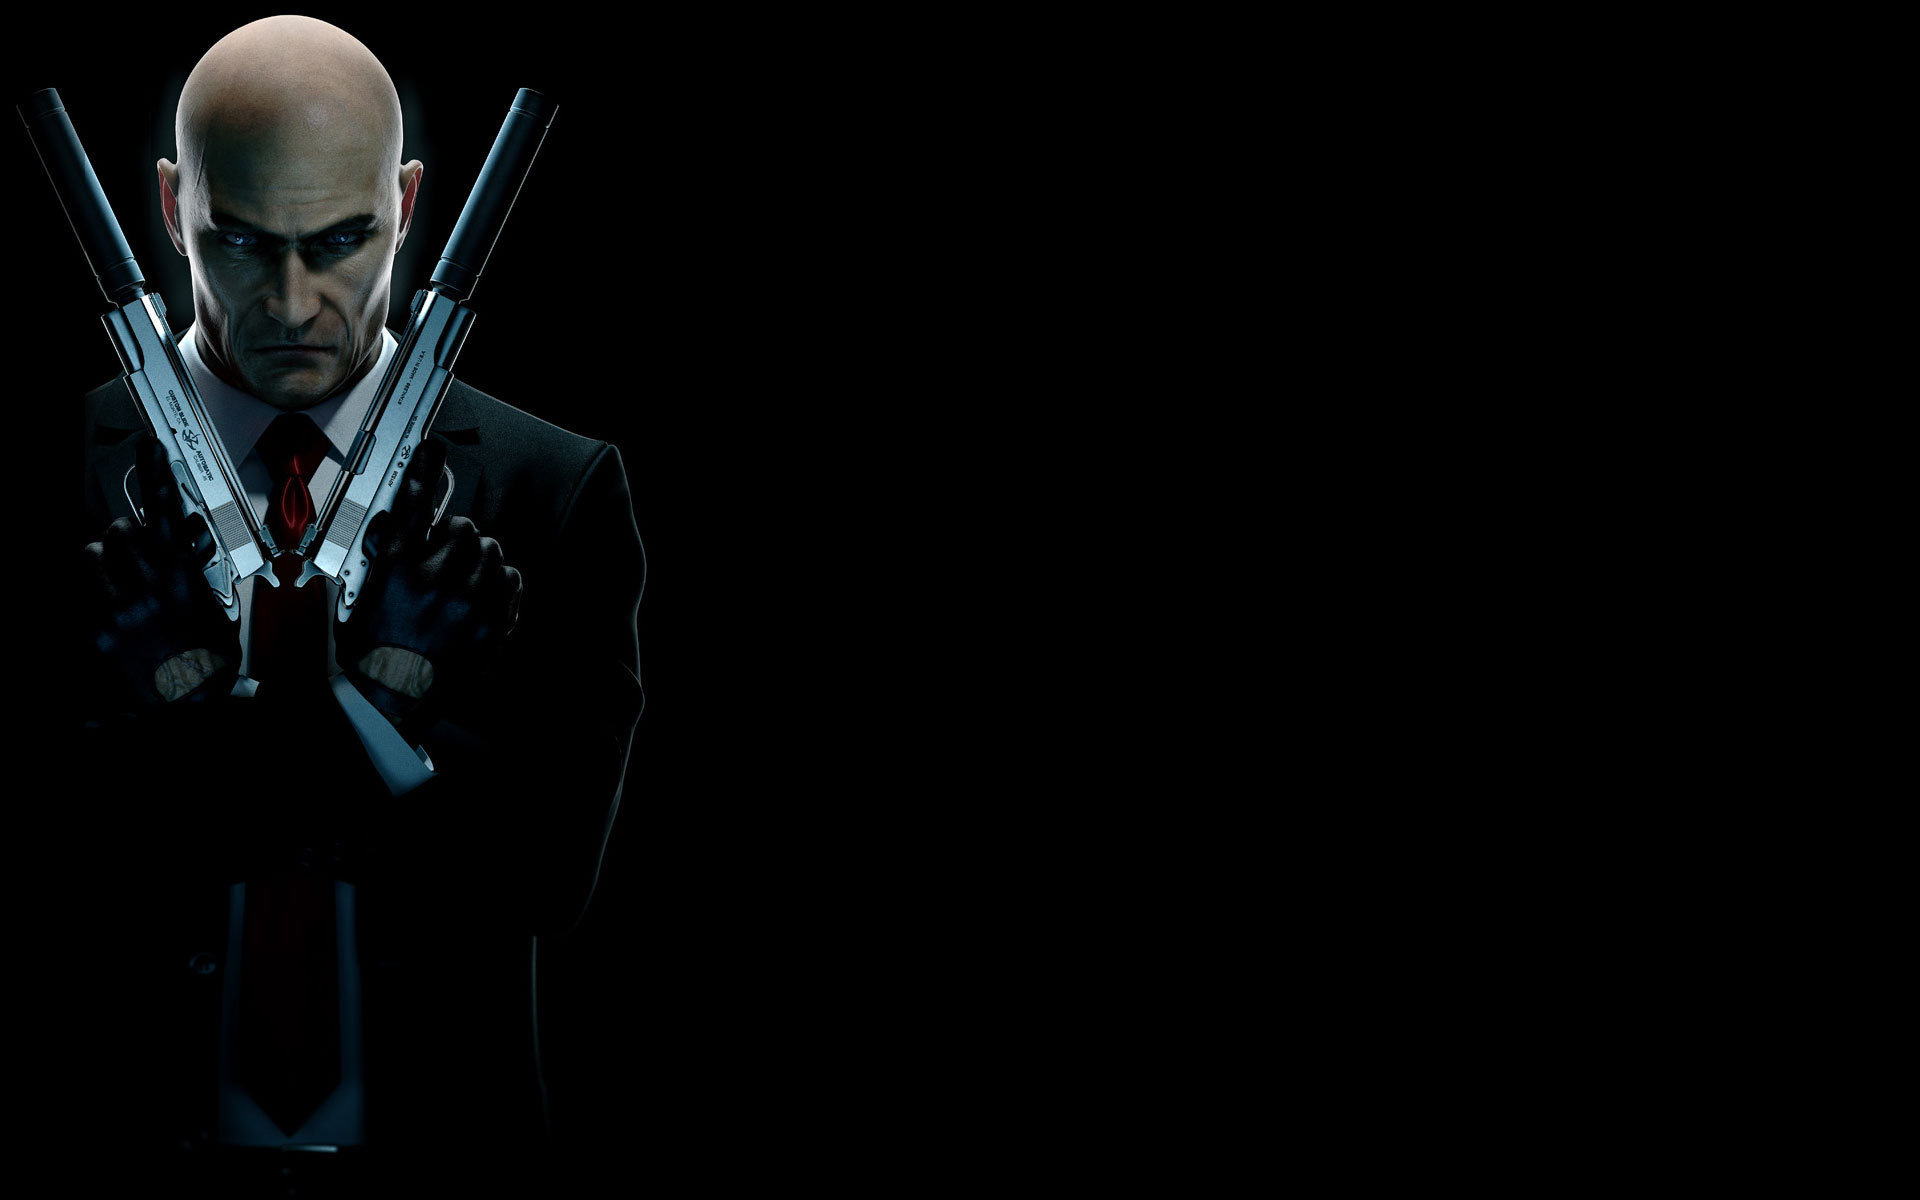 hitman: absolution wallpapers 1920x1200 desktop backgrounds